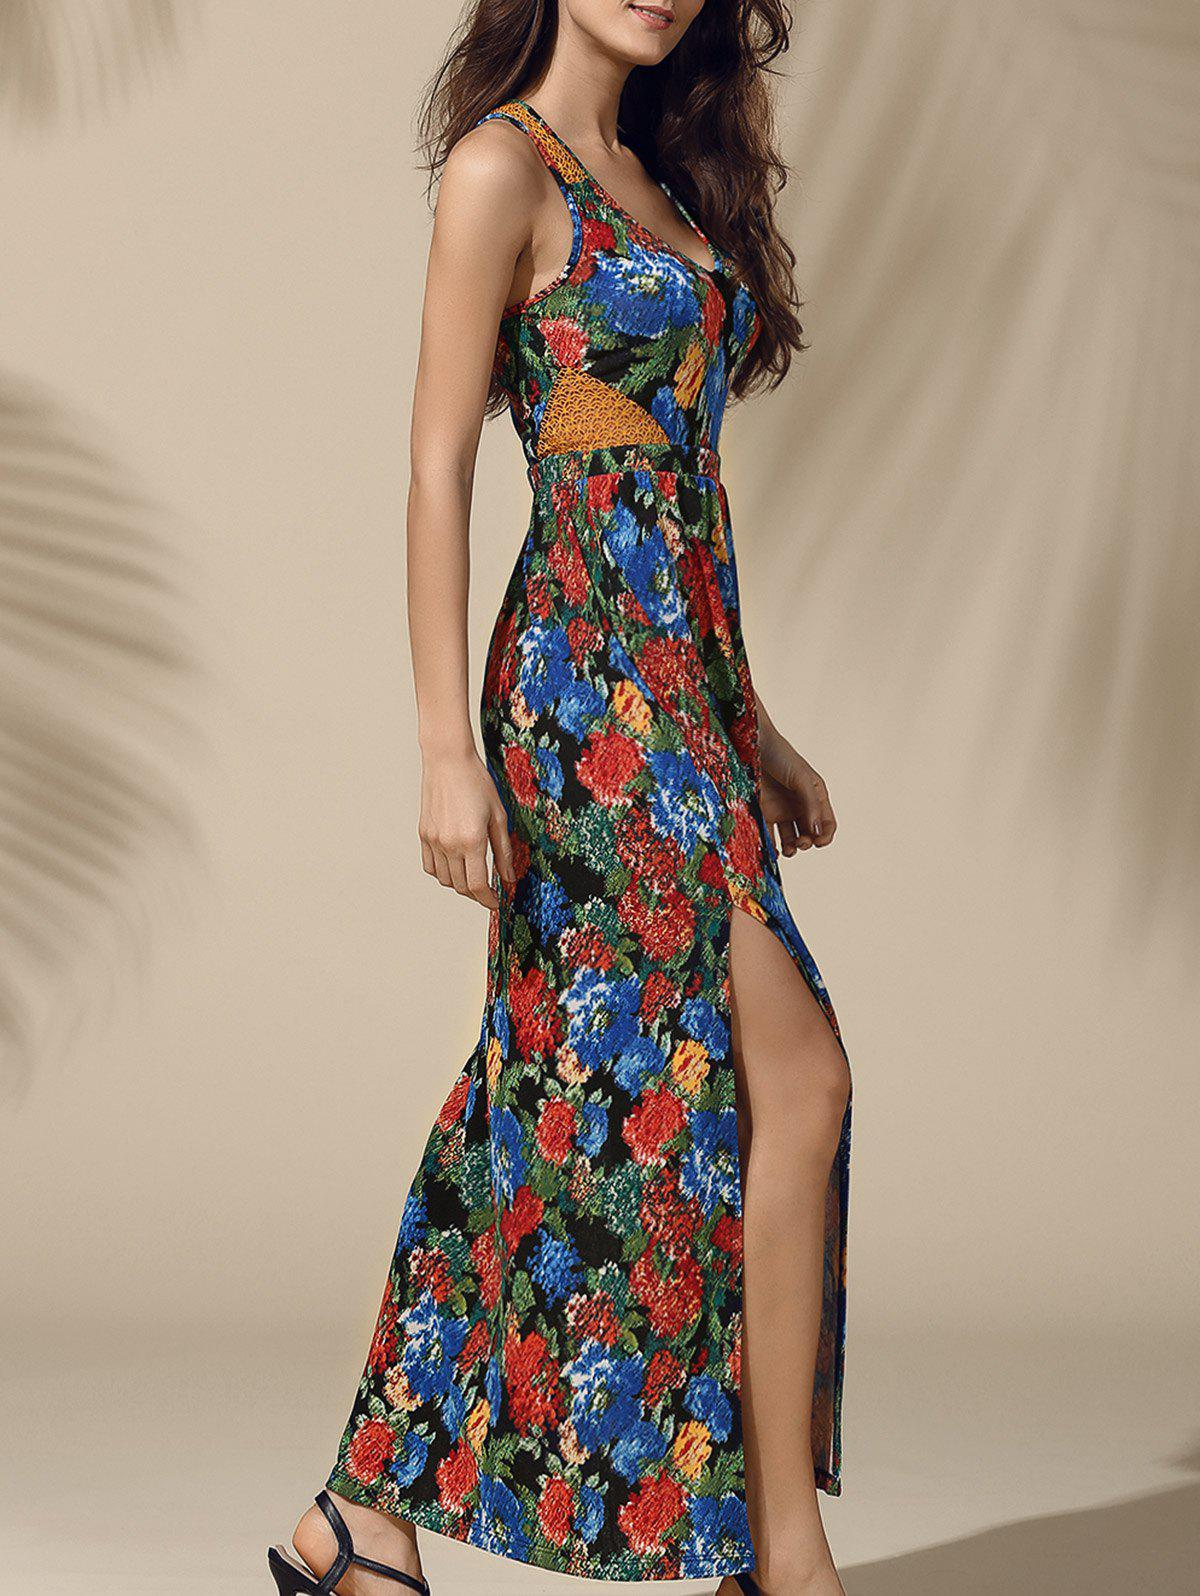 Attractive High Slit Floral Print Women's Maxi Dress - COLORMIX M